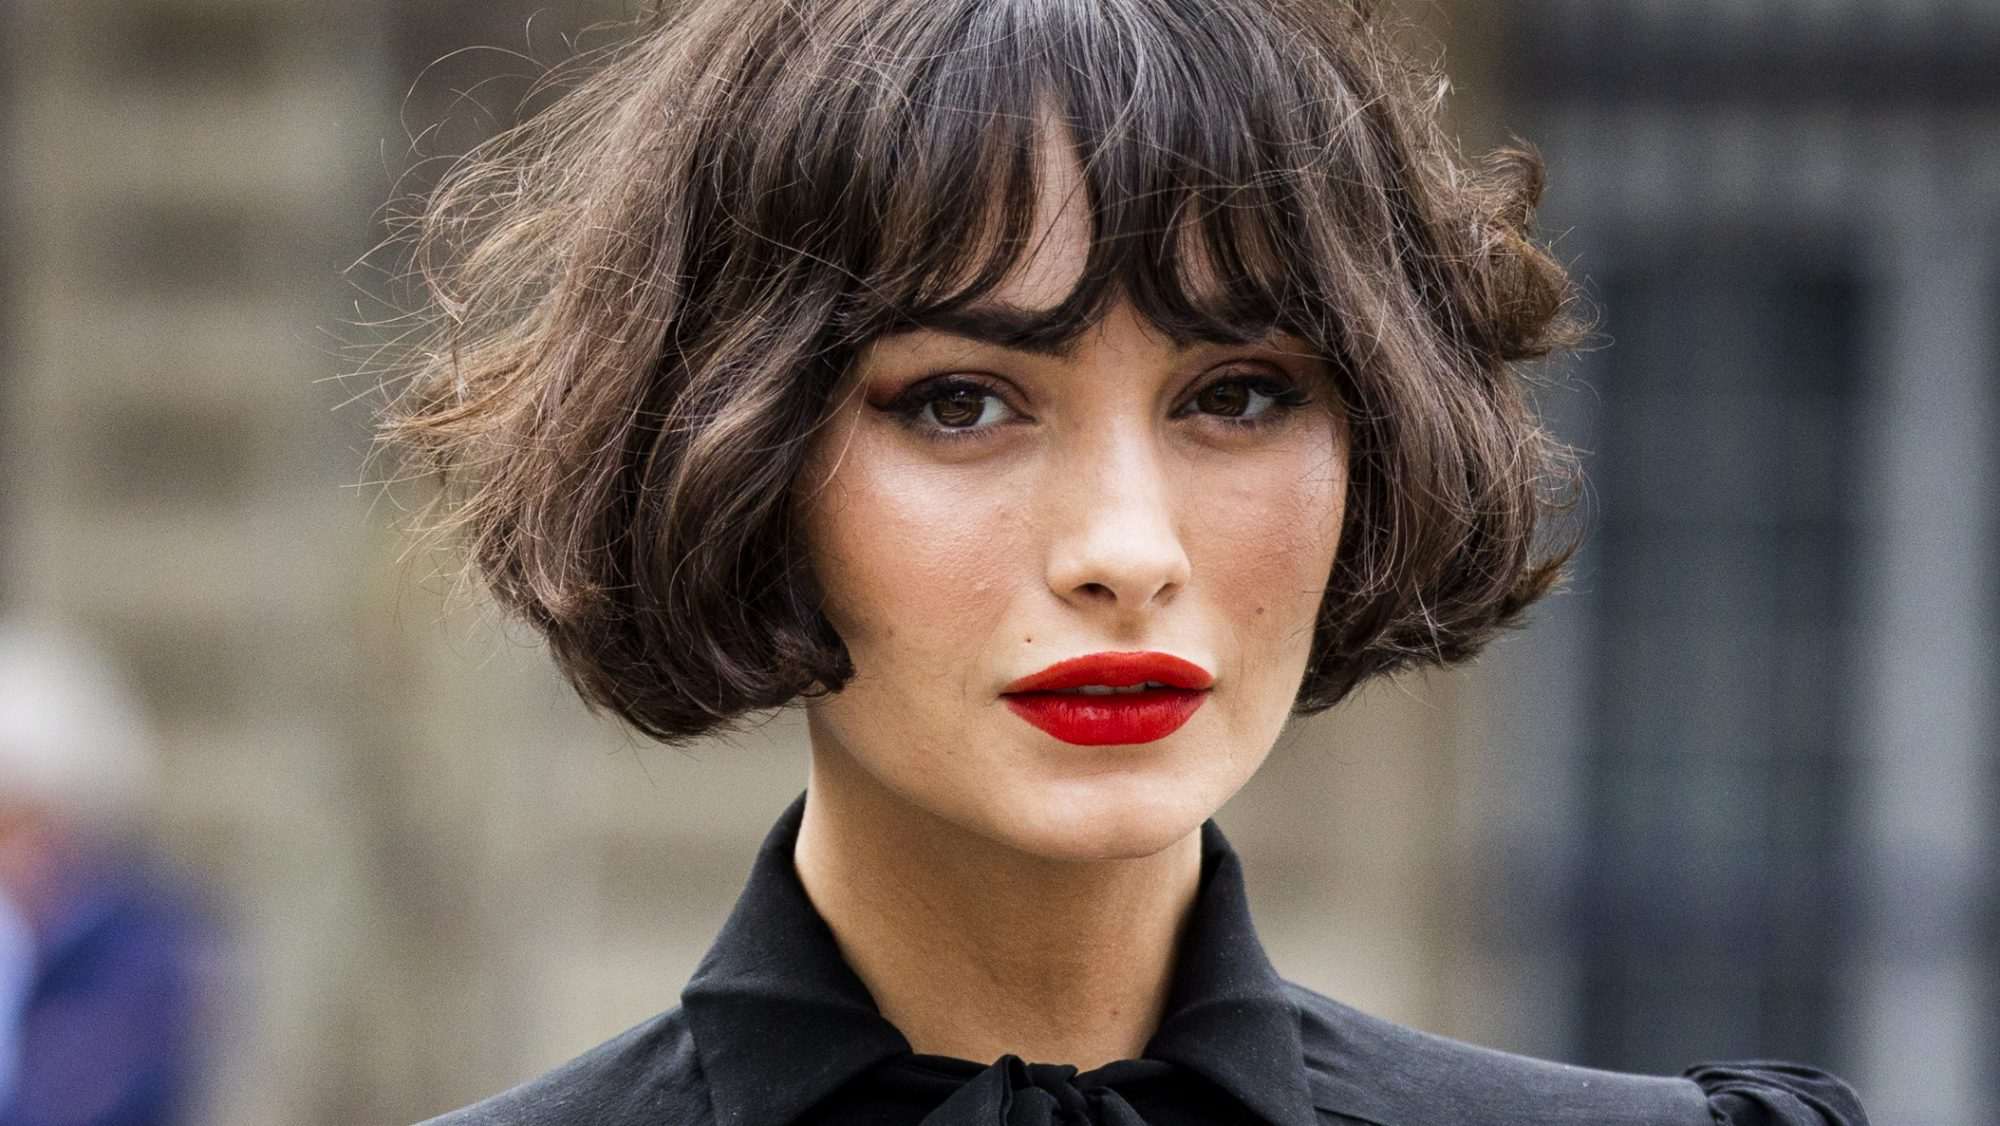 Women's FrenchBob Hairstyle